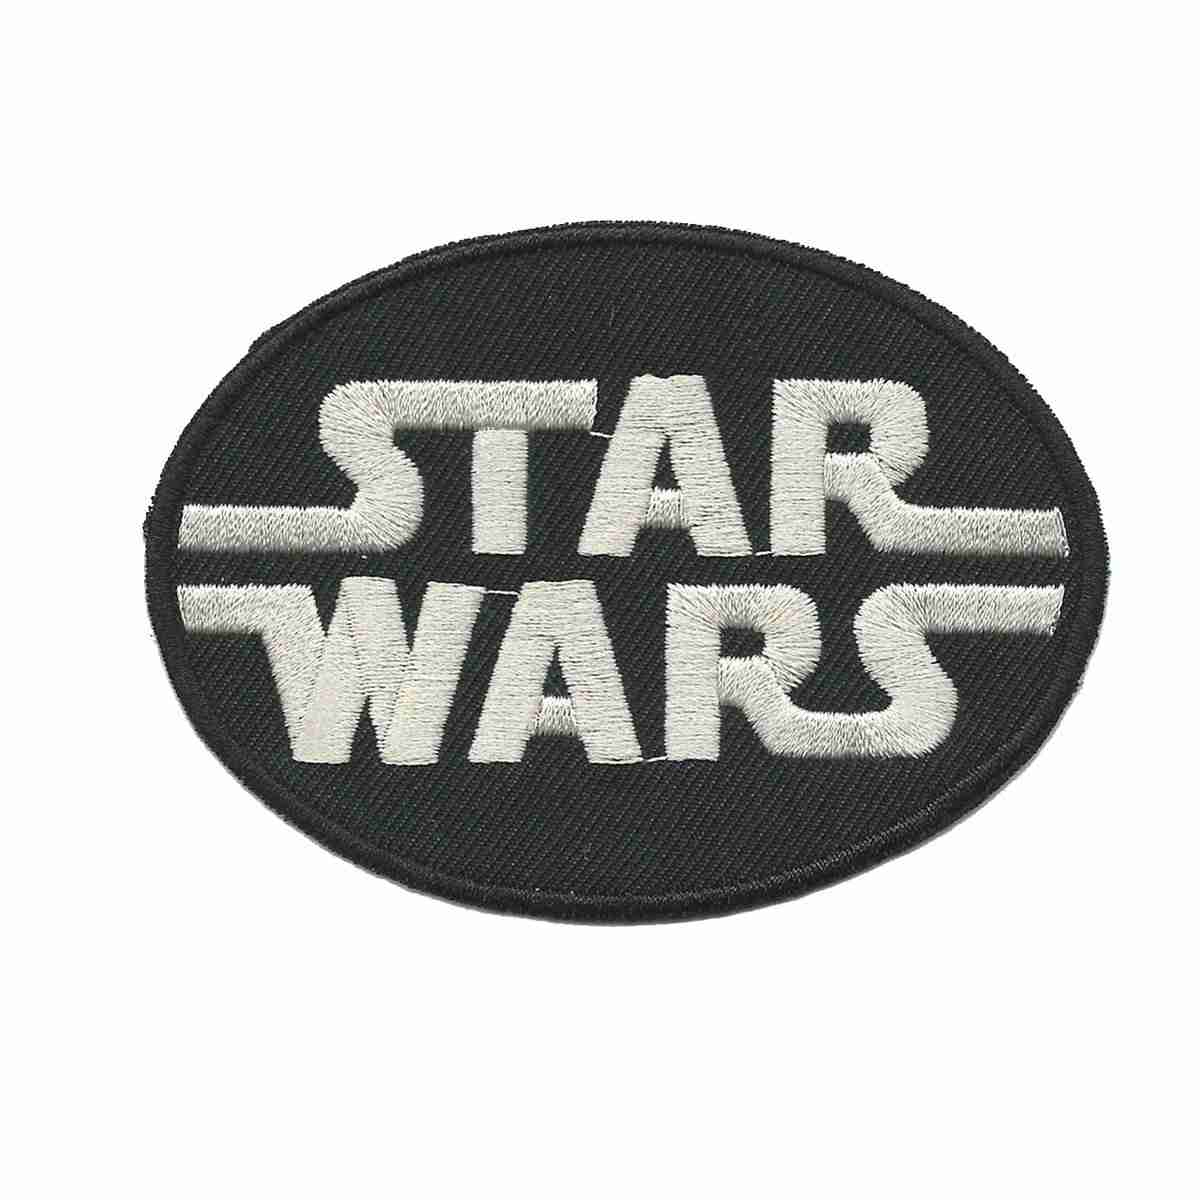 Star wars darth vader dark side lord vader embroidered patch sw.